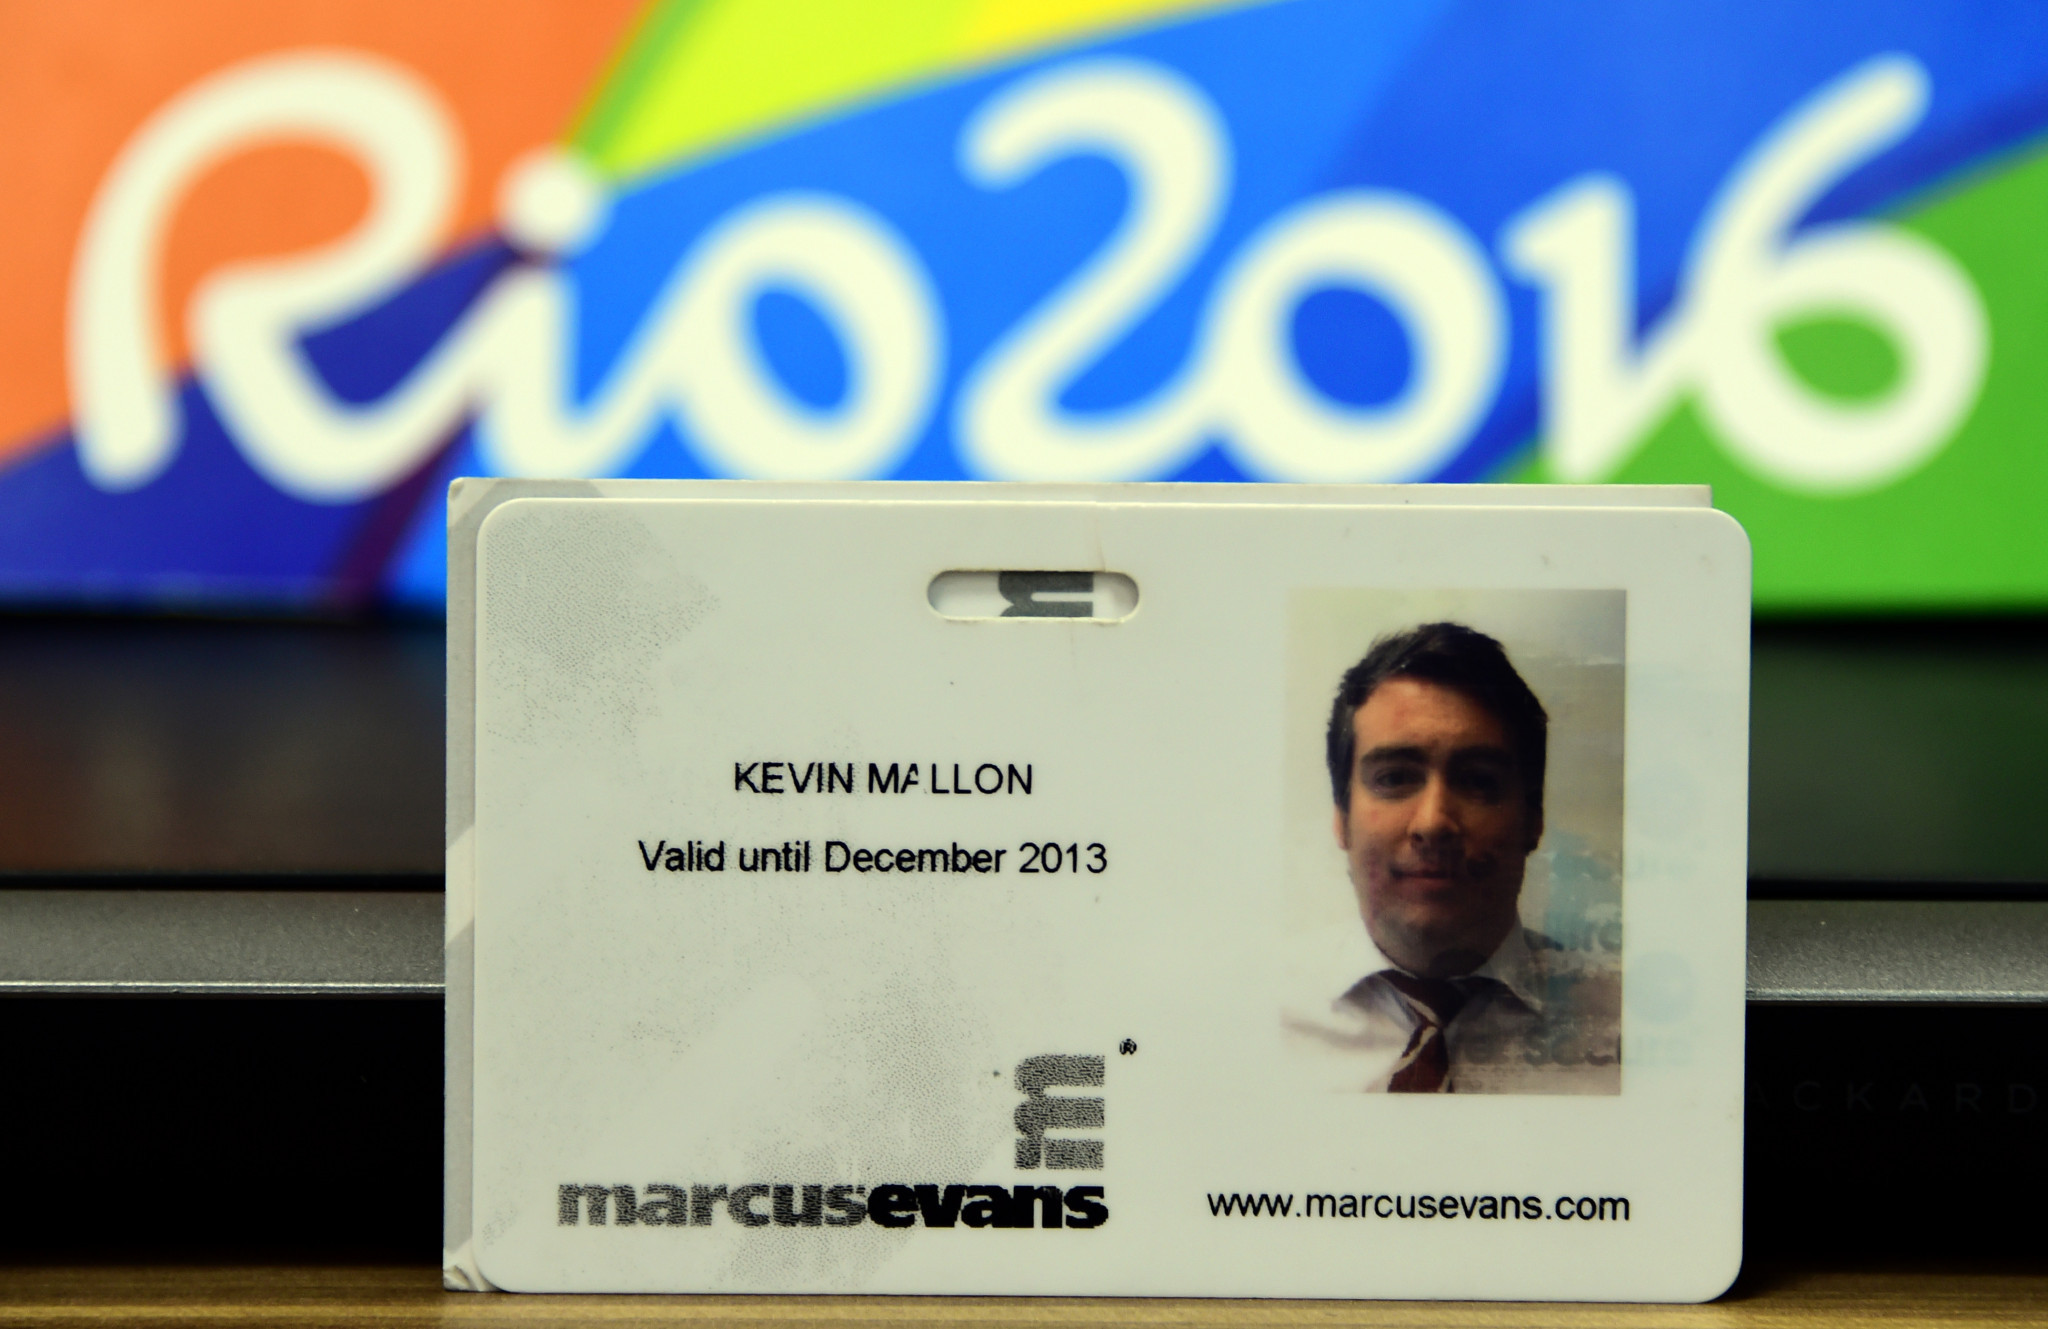 A business ID card belonging to Kevin Mallon of THG Sports ©Getty Images